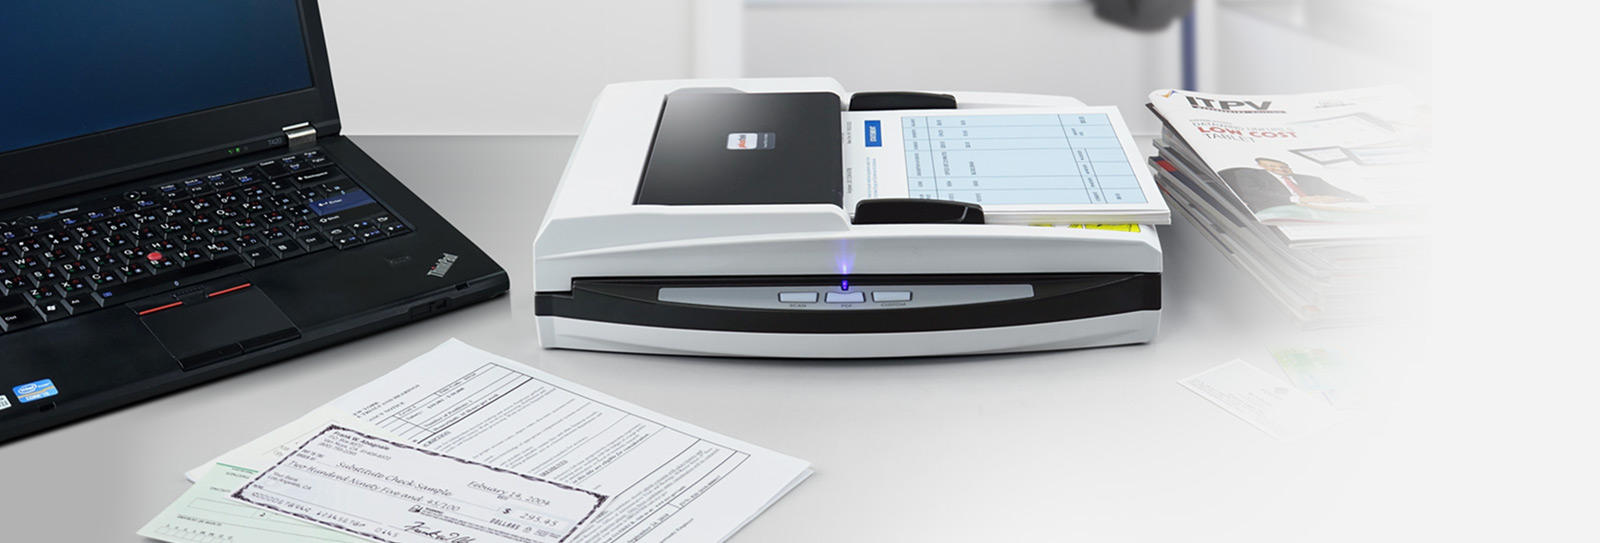 plustek offers this scanner for office who need to scan with fragile and unbreakable document, also want to have automatic document feeder capability